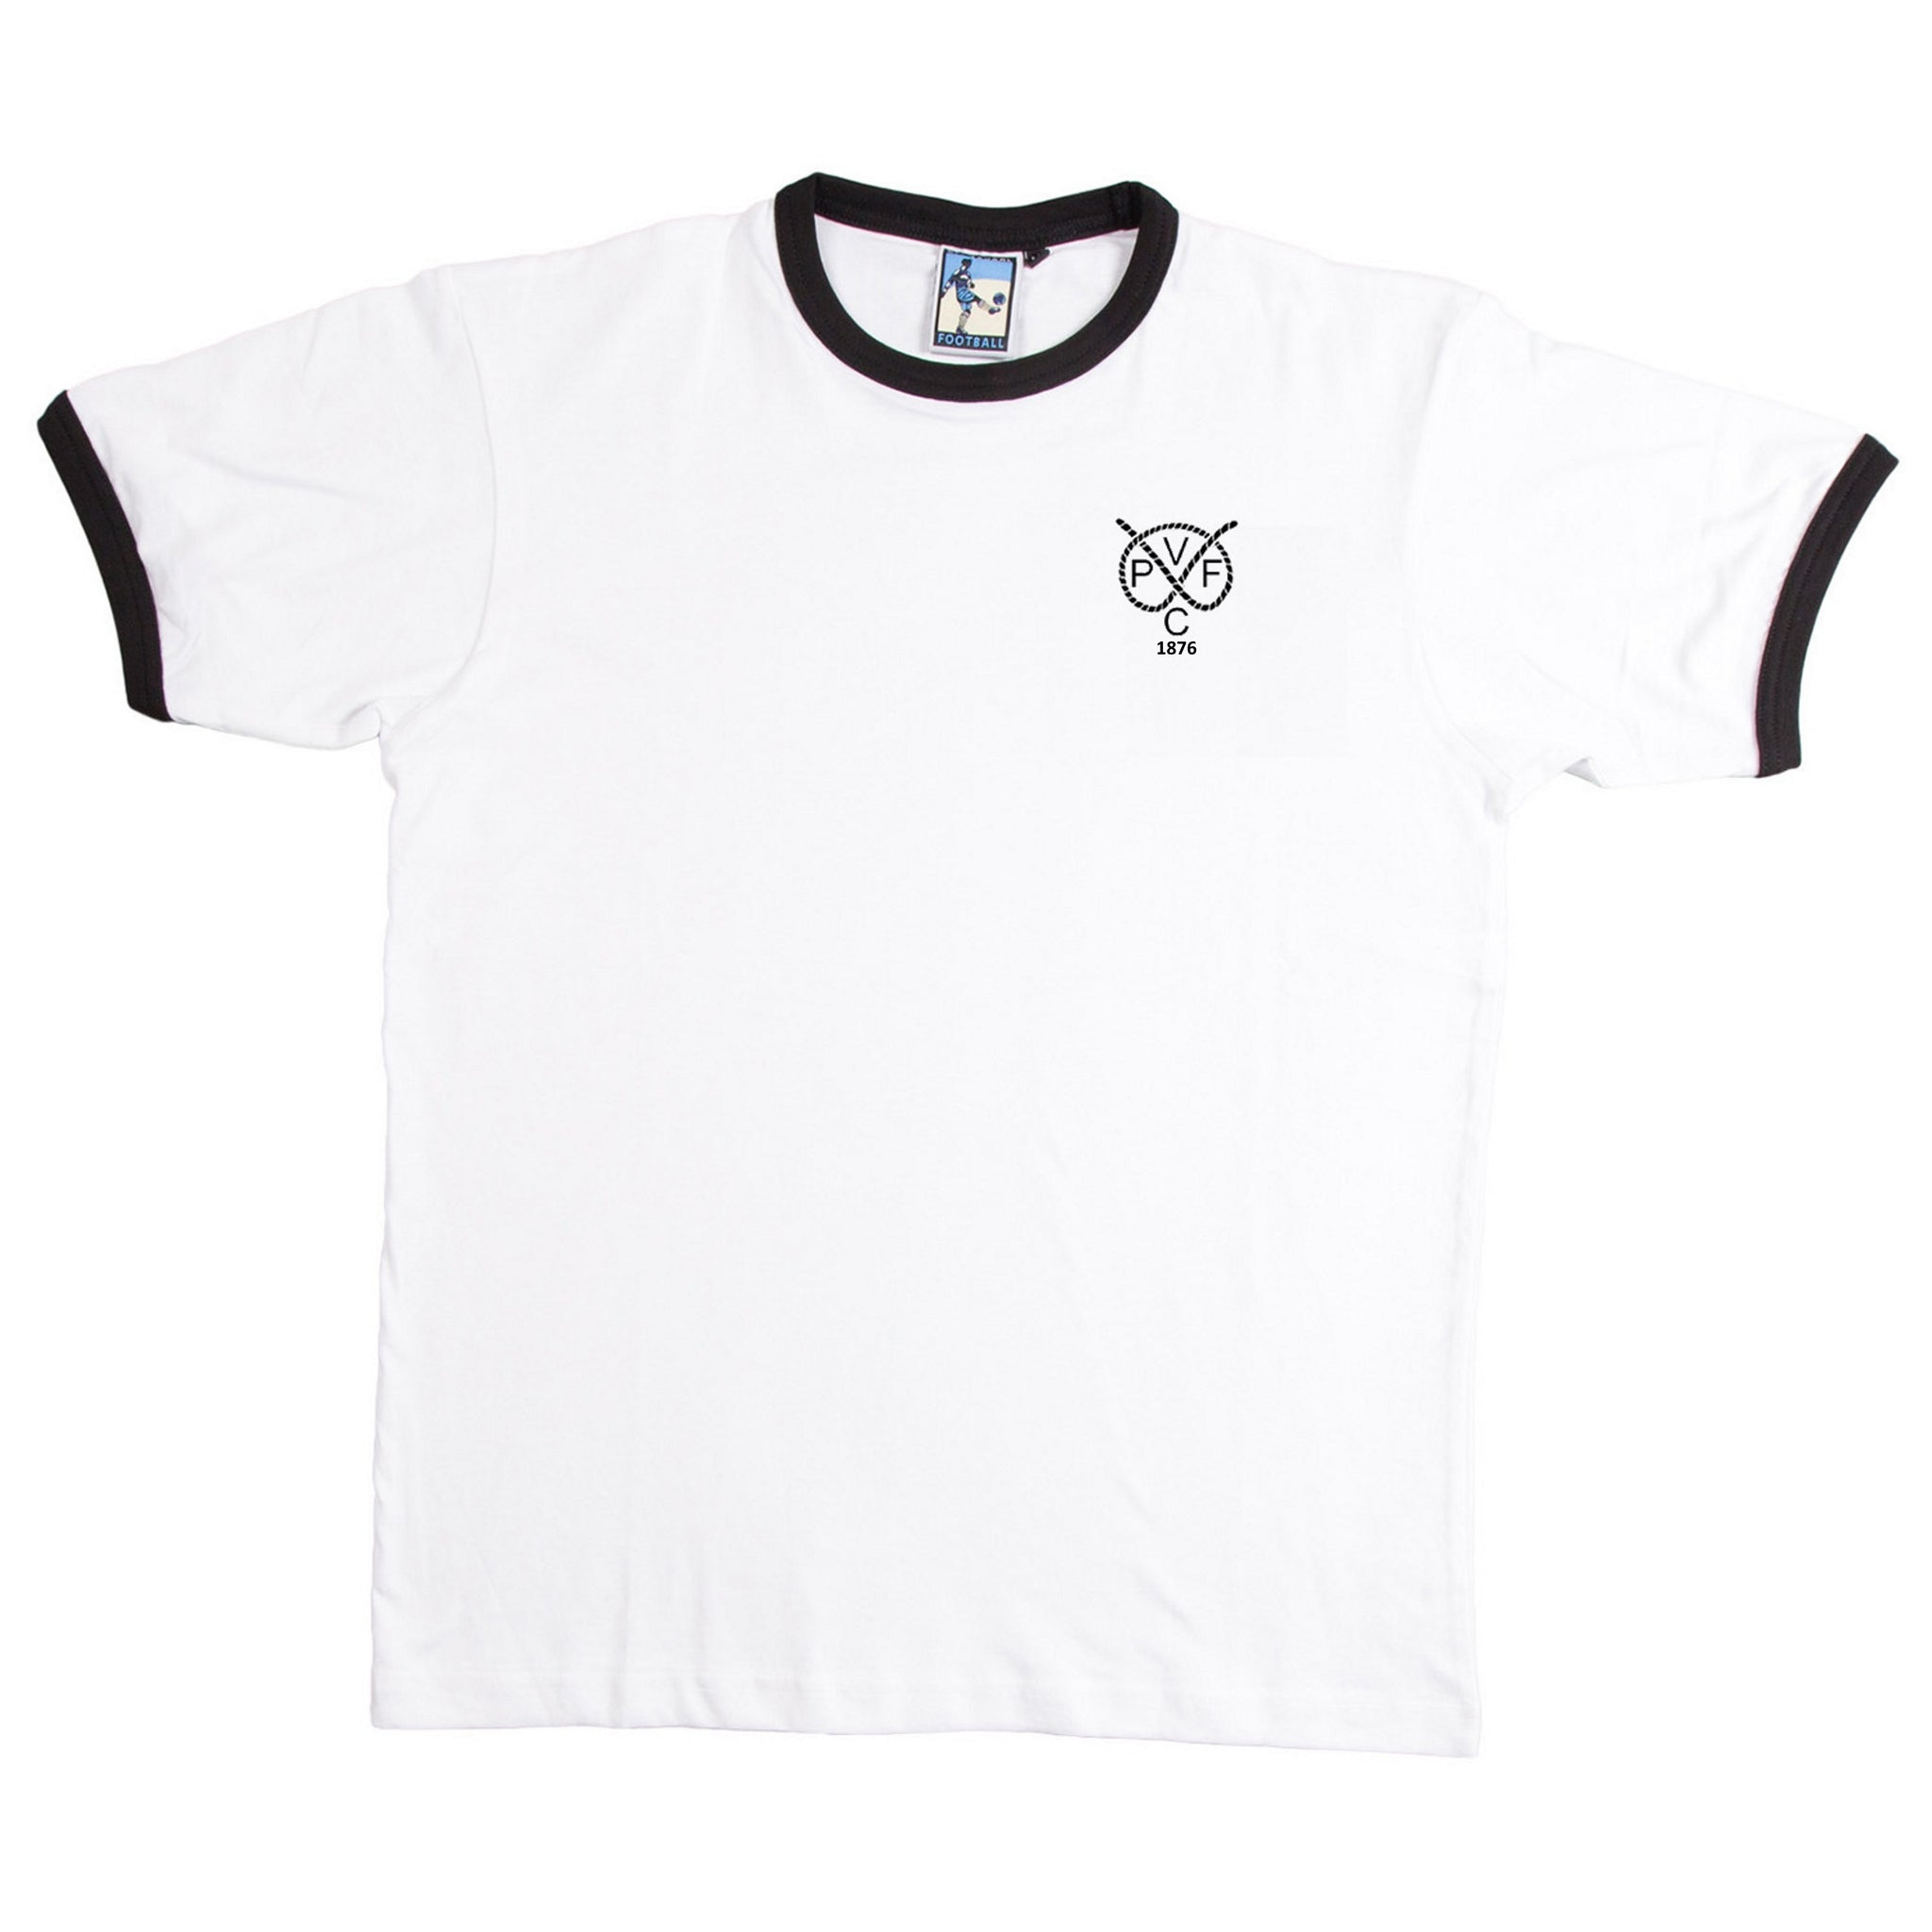 Port Vale Retro Football T Shirt 1876 - T-shirt